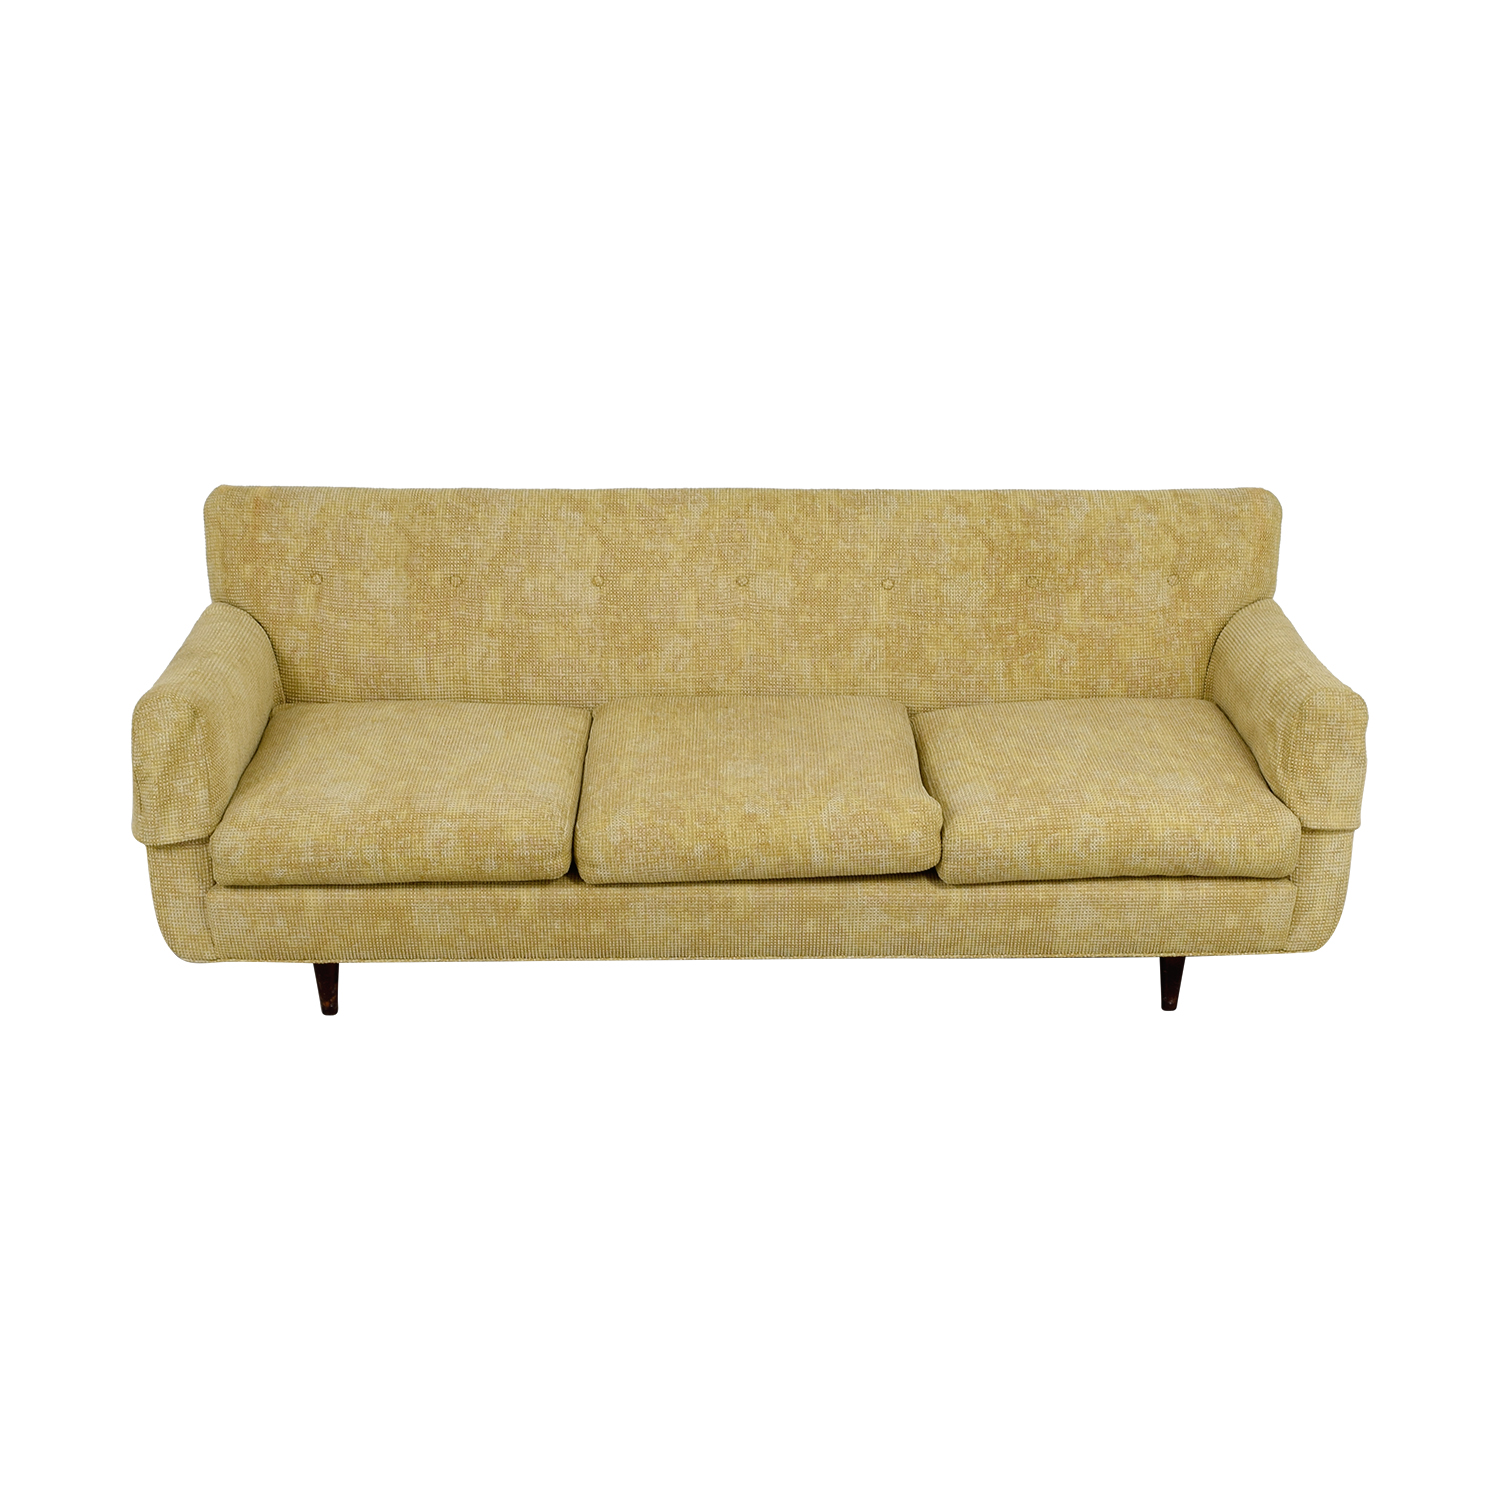 Custom Tan Mid Century Three Cushion Sofa Sofas